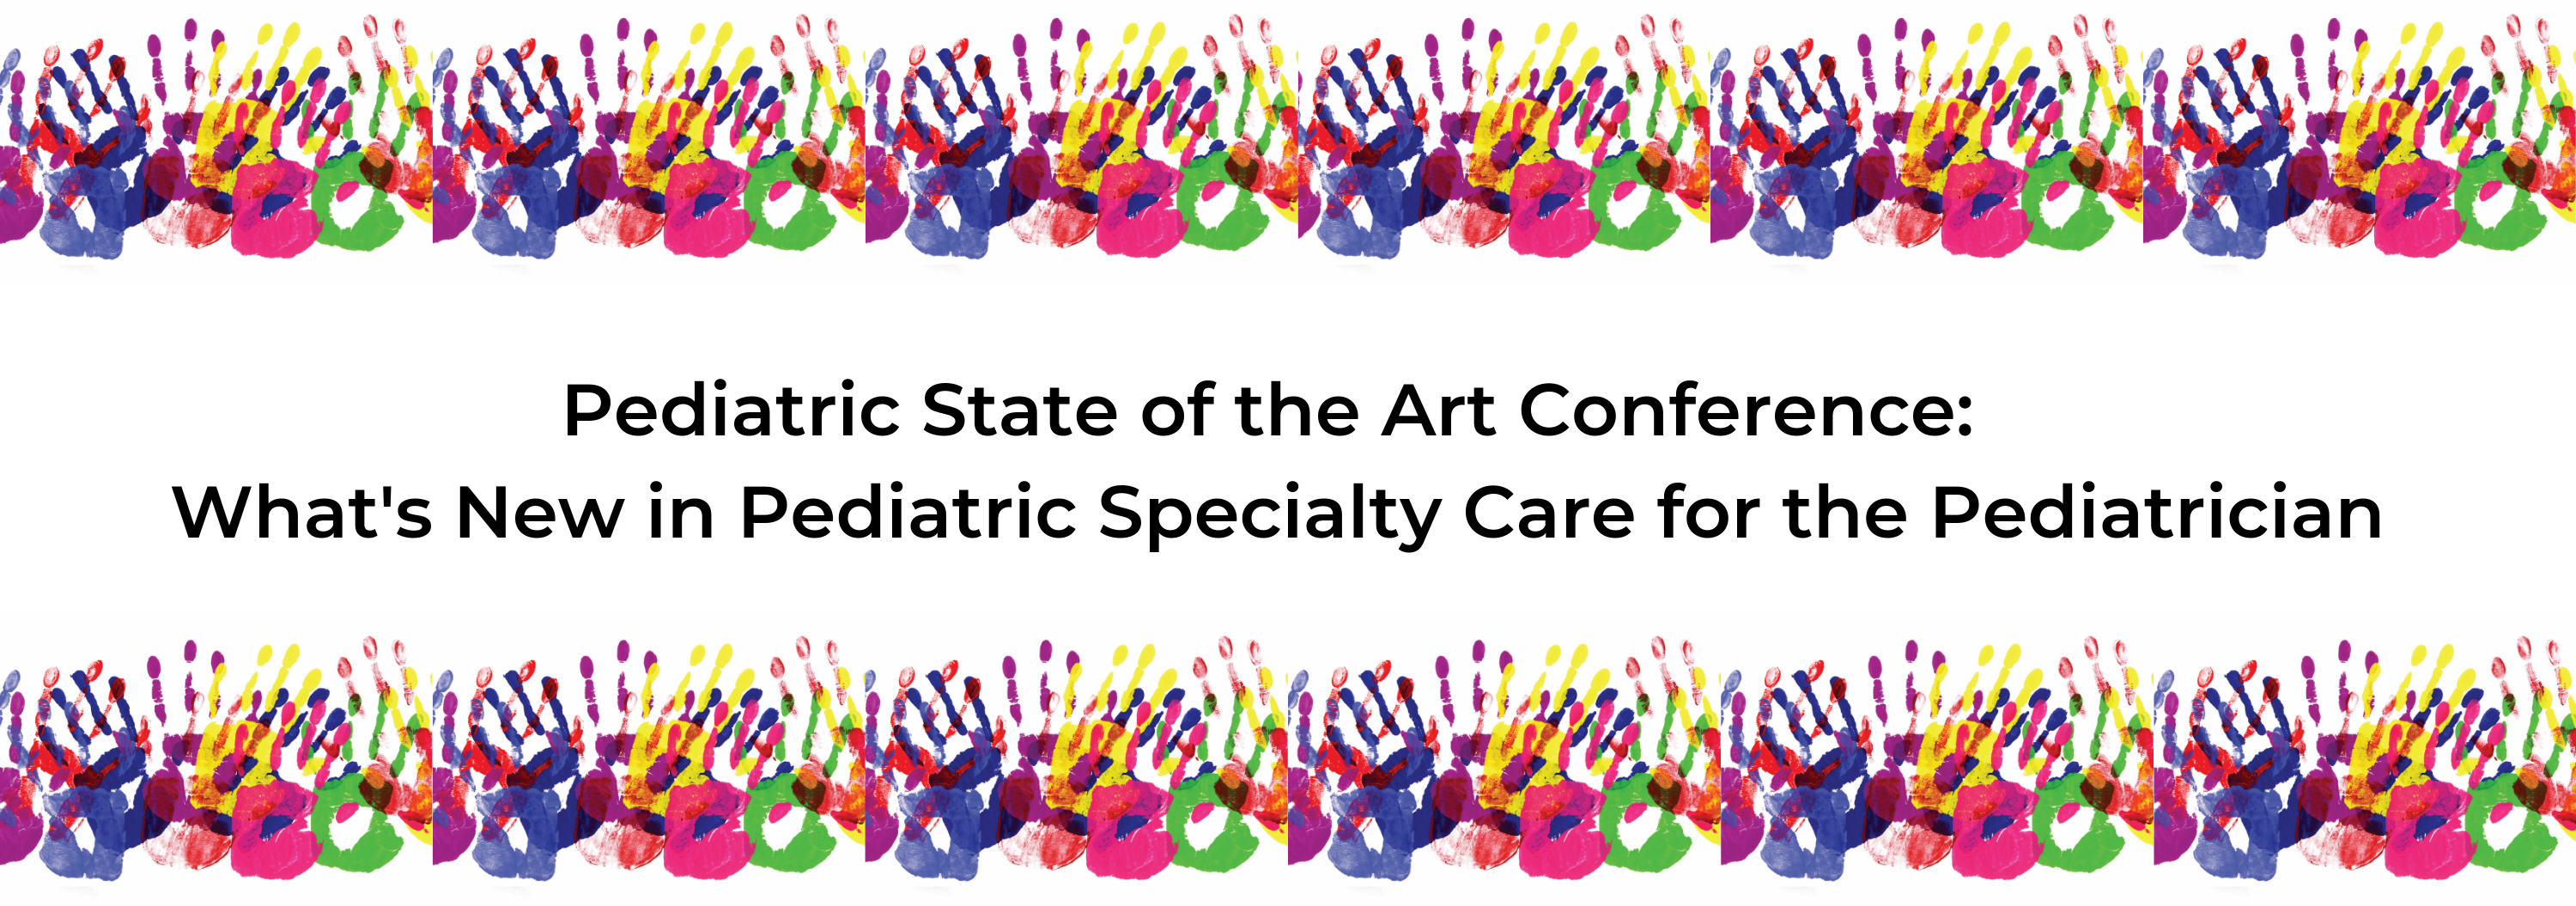 2019 Pediatric State of the Art Conference: What's New in